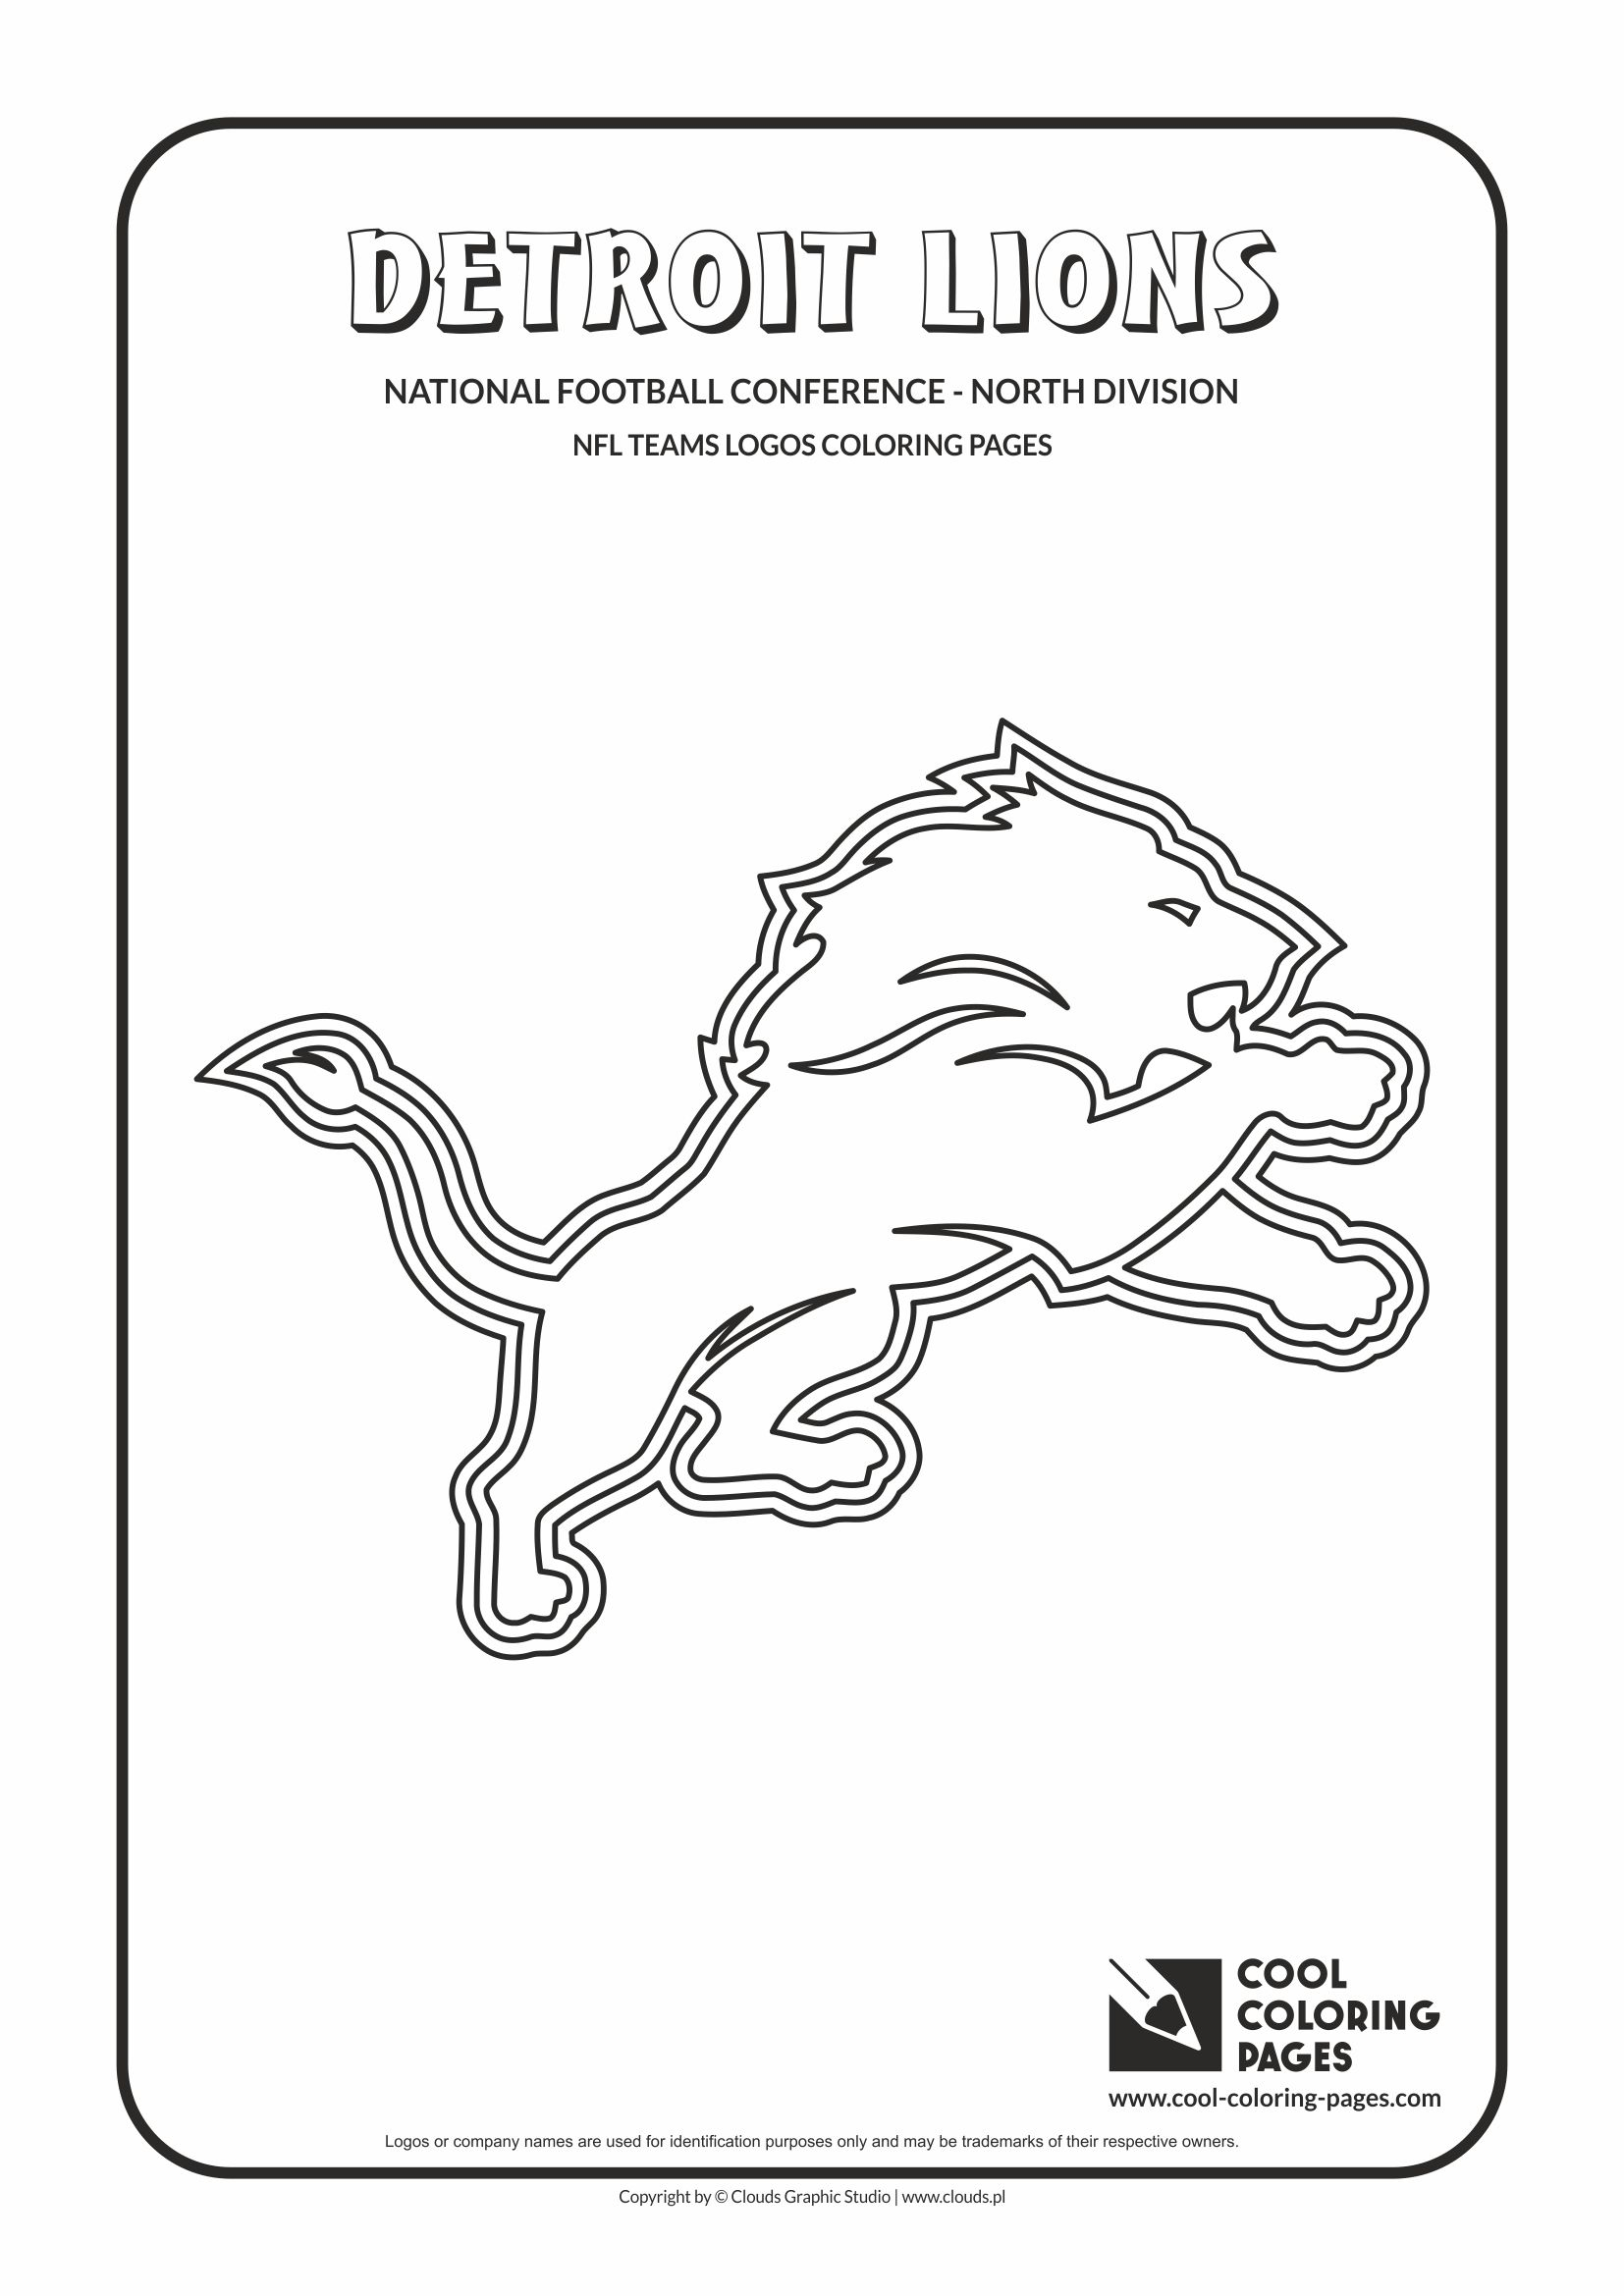 Cool Coloring Pages - NFL American Football Clubs Logos - National Football Conference - North Division / Detroit Lions logo / Coloring page with Detroit Lions logo